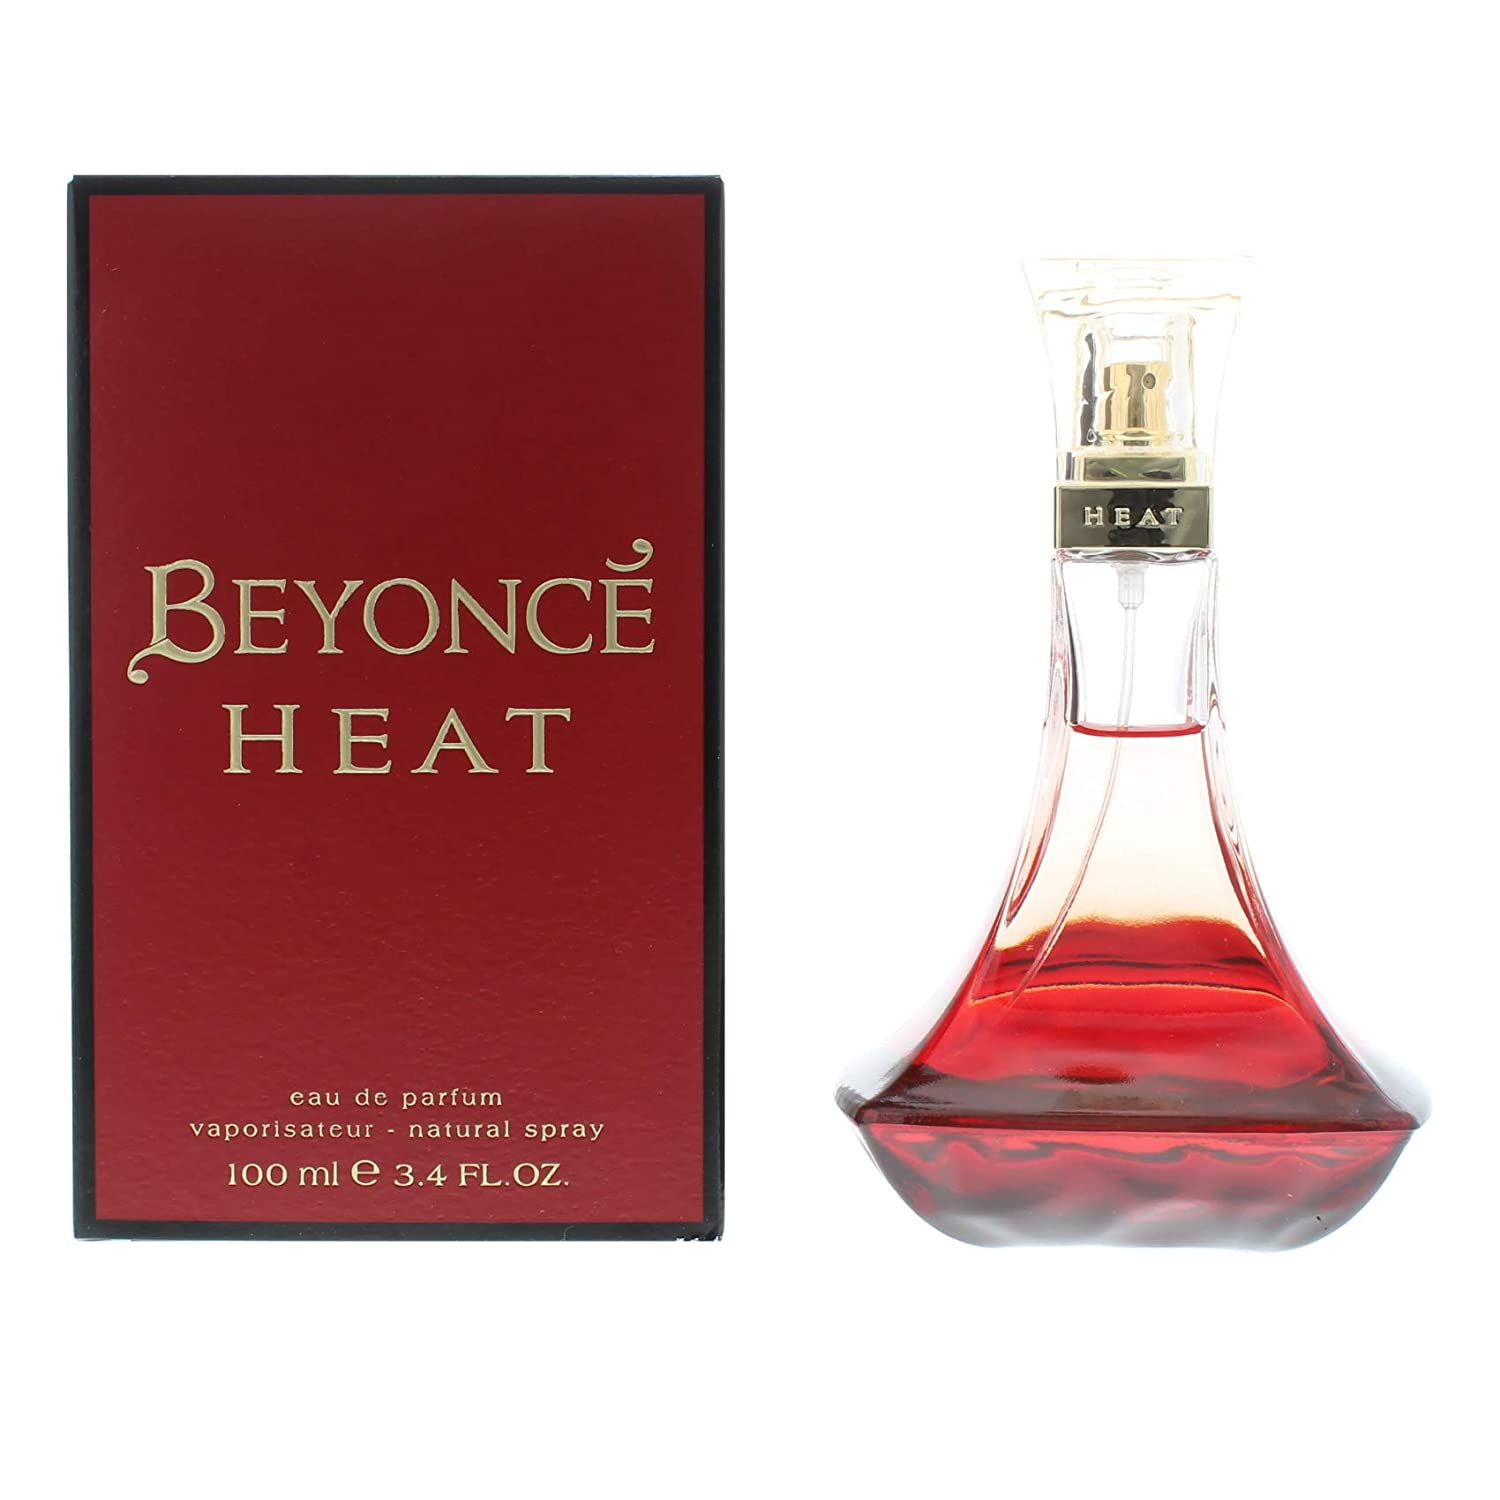 Beyonce Heat Perfume Beyonce for Women